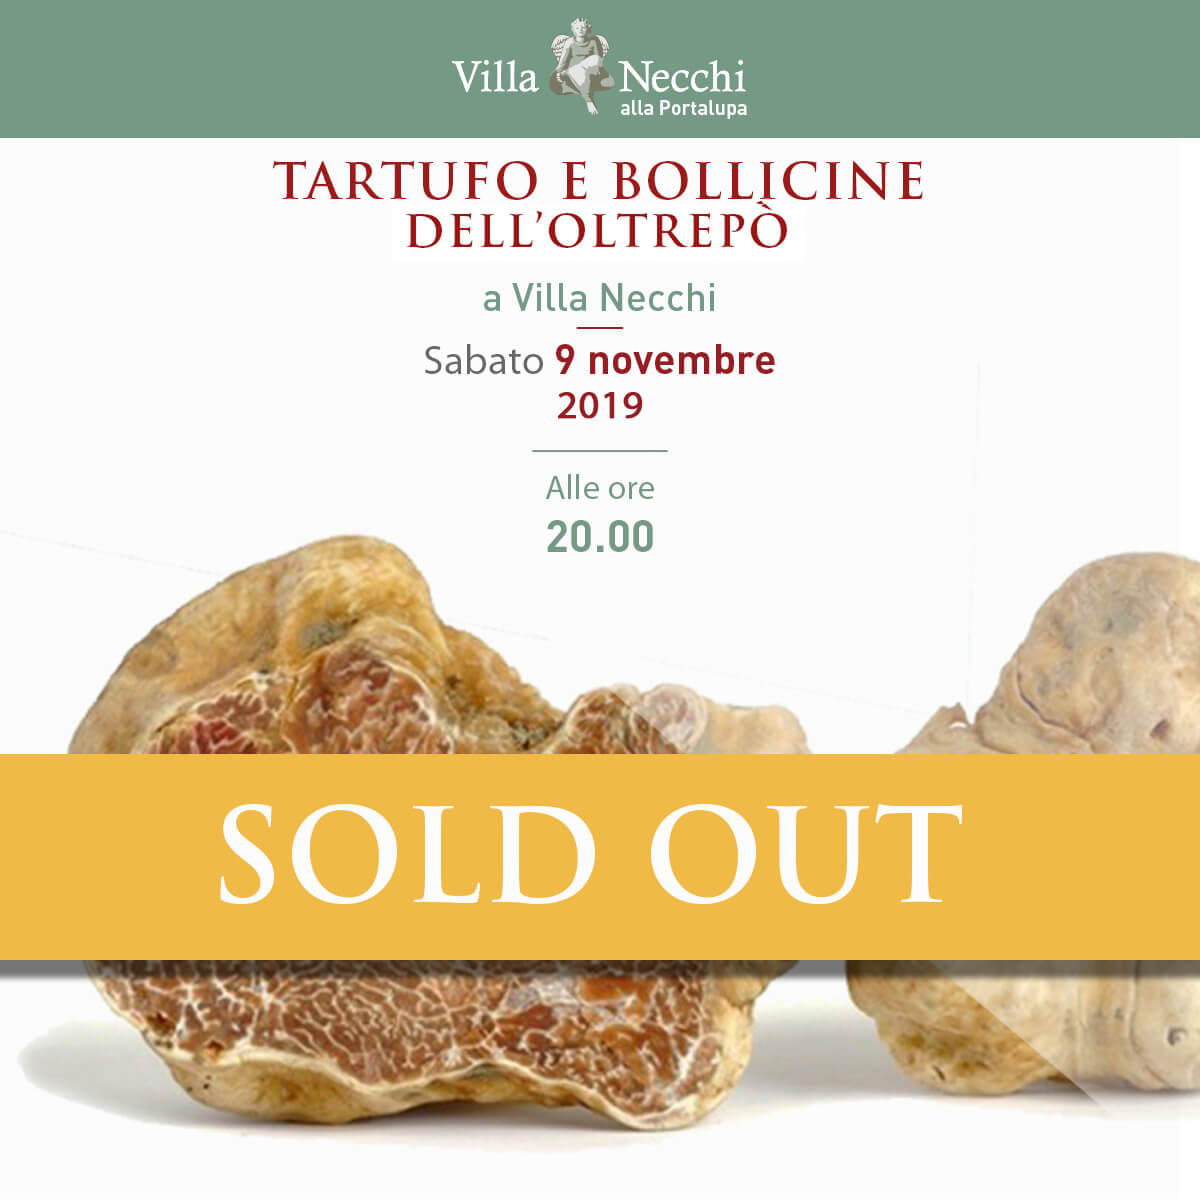 VN_post FB_bollicine_Tartufo_sold_out